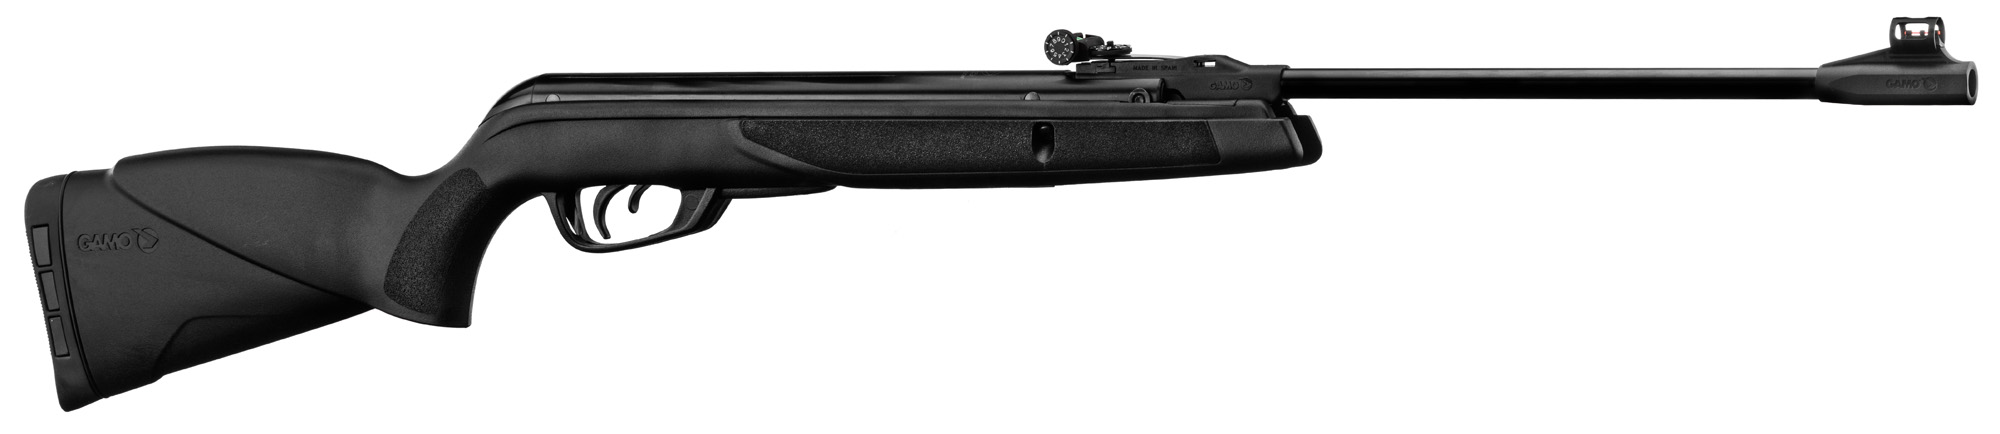 GAMO Shadow 640 - 4,5 m/m - 9,19 joules - G1300